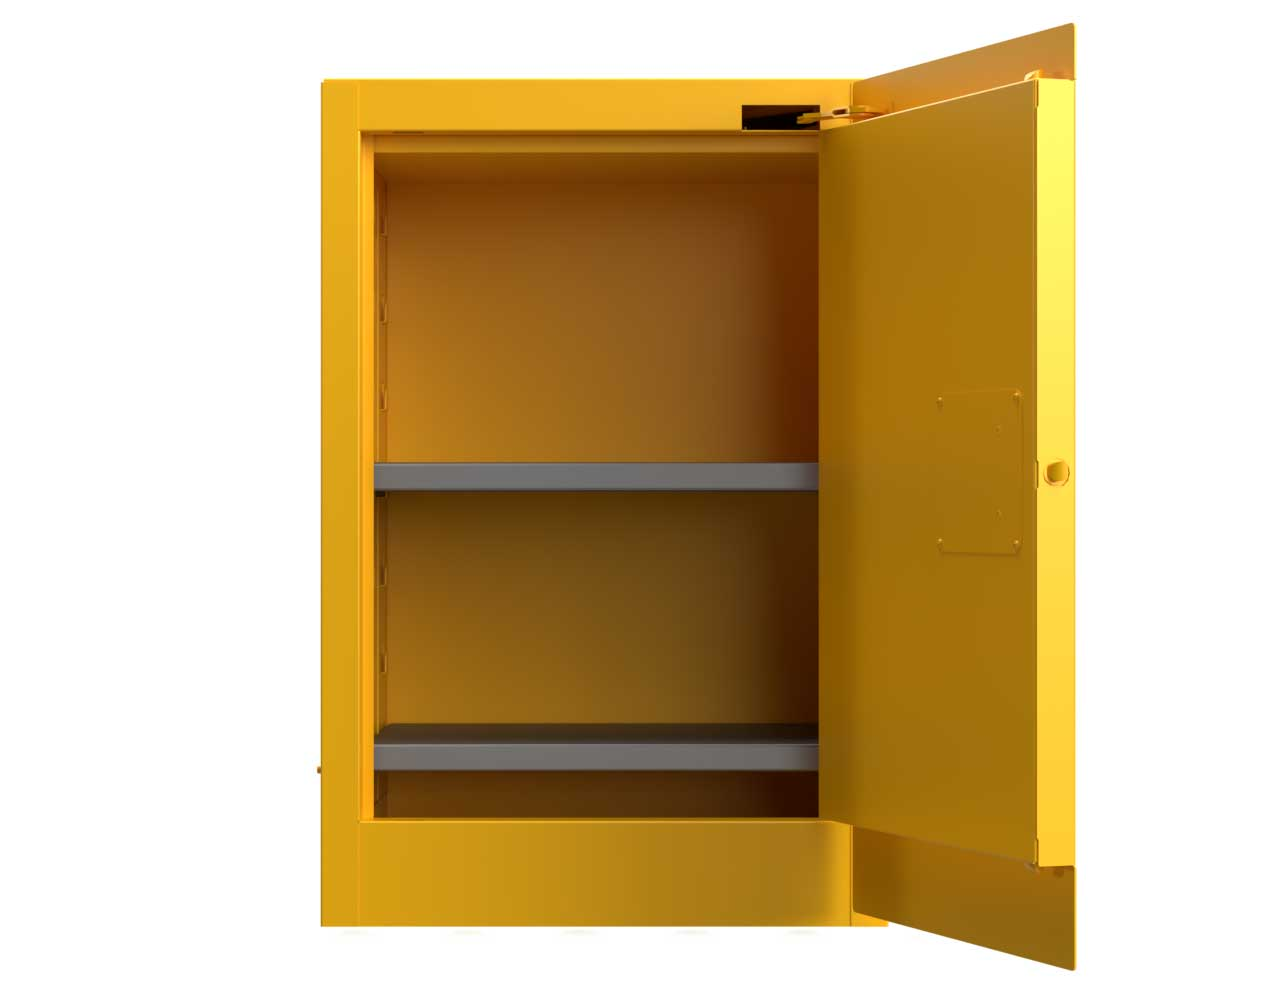 Heavy Duty 14 GA 12 Gallon Flammable Safety Cabinet with Manual-Closing Doors, 2 Shelves – 24 In. W x 18 In. D x 36 In. H